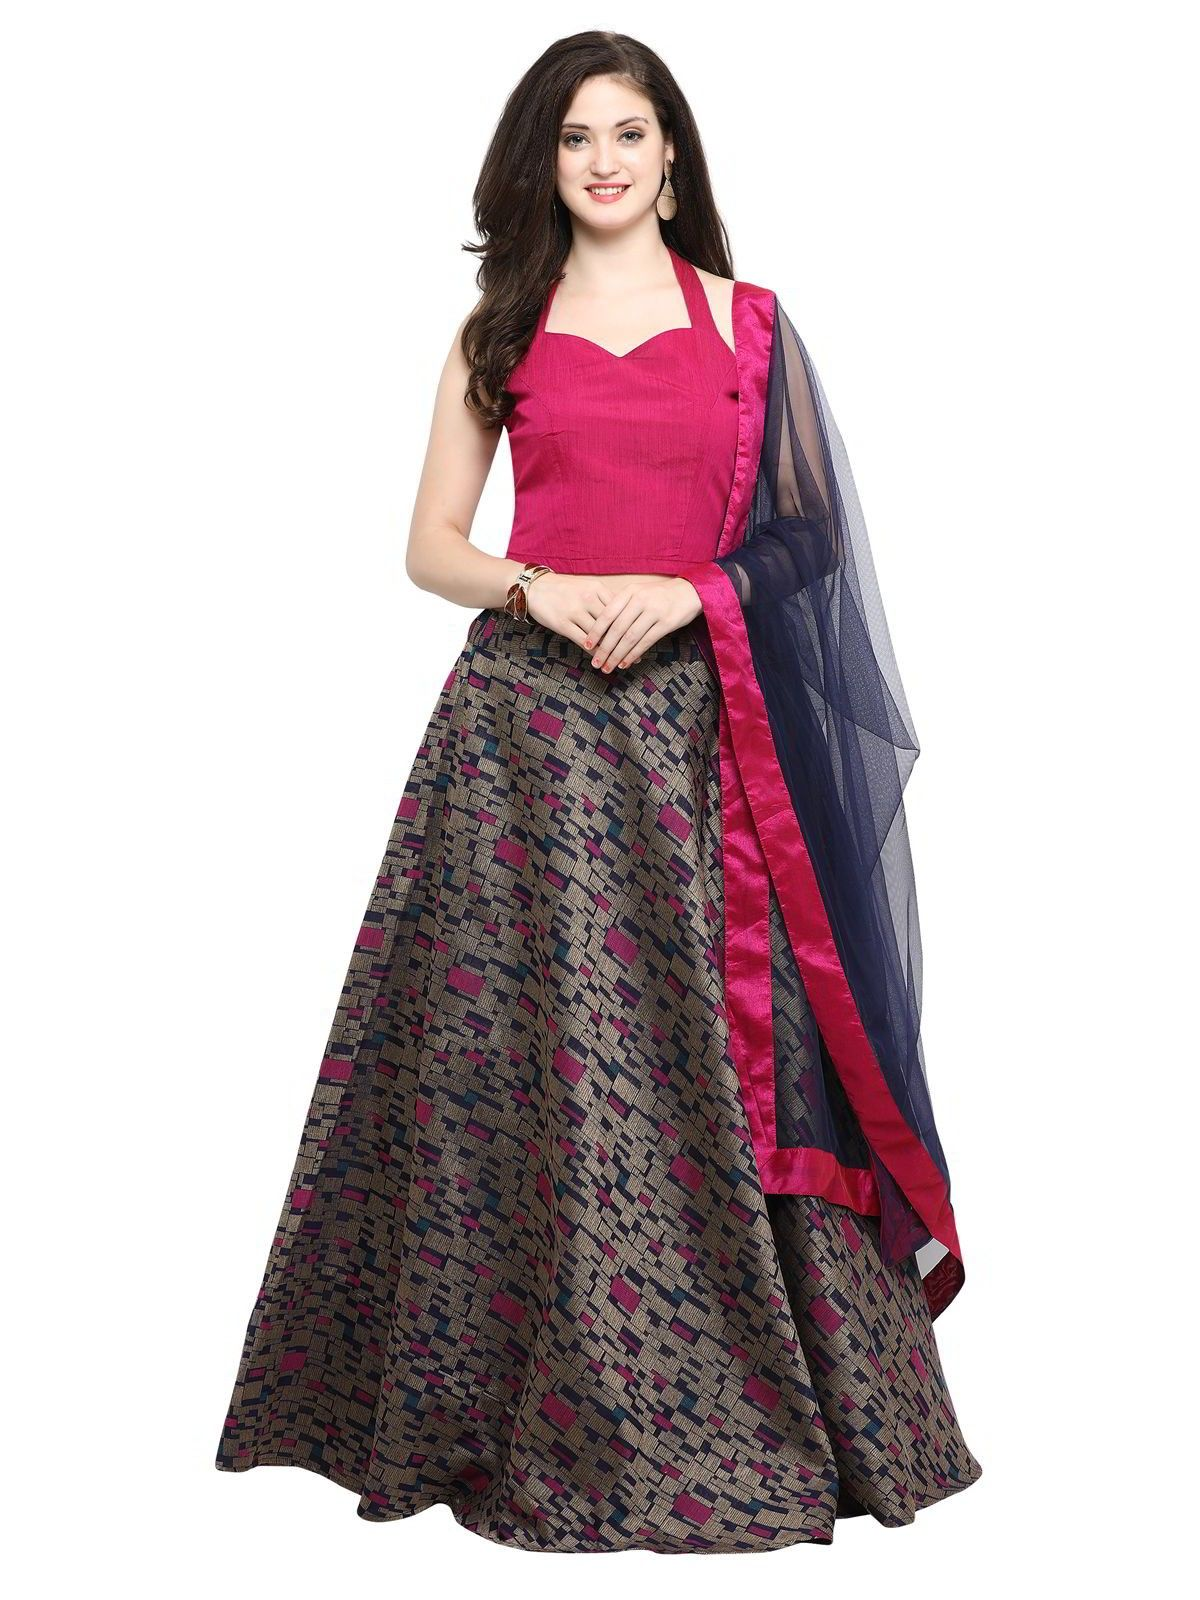 6e234295bc Classy pink partywear lehenga choli online for women which is crafted from  chanderi cotton fabric with